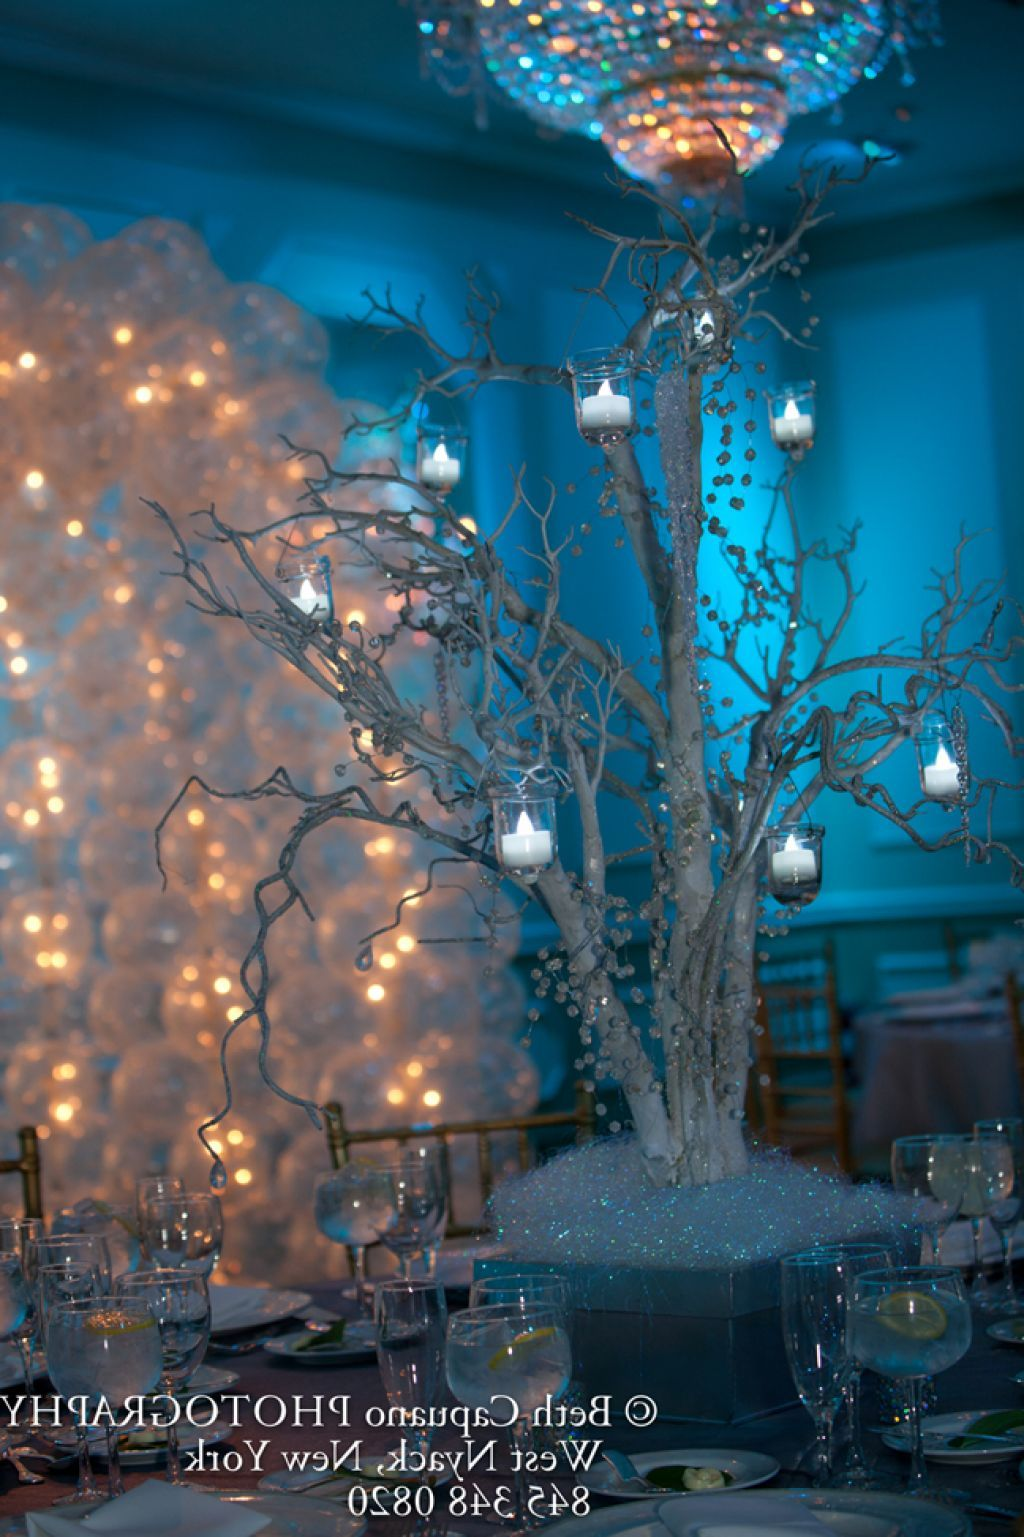 winter wonderland wedding table ideas%0A Letter Template Free Microsoft Word